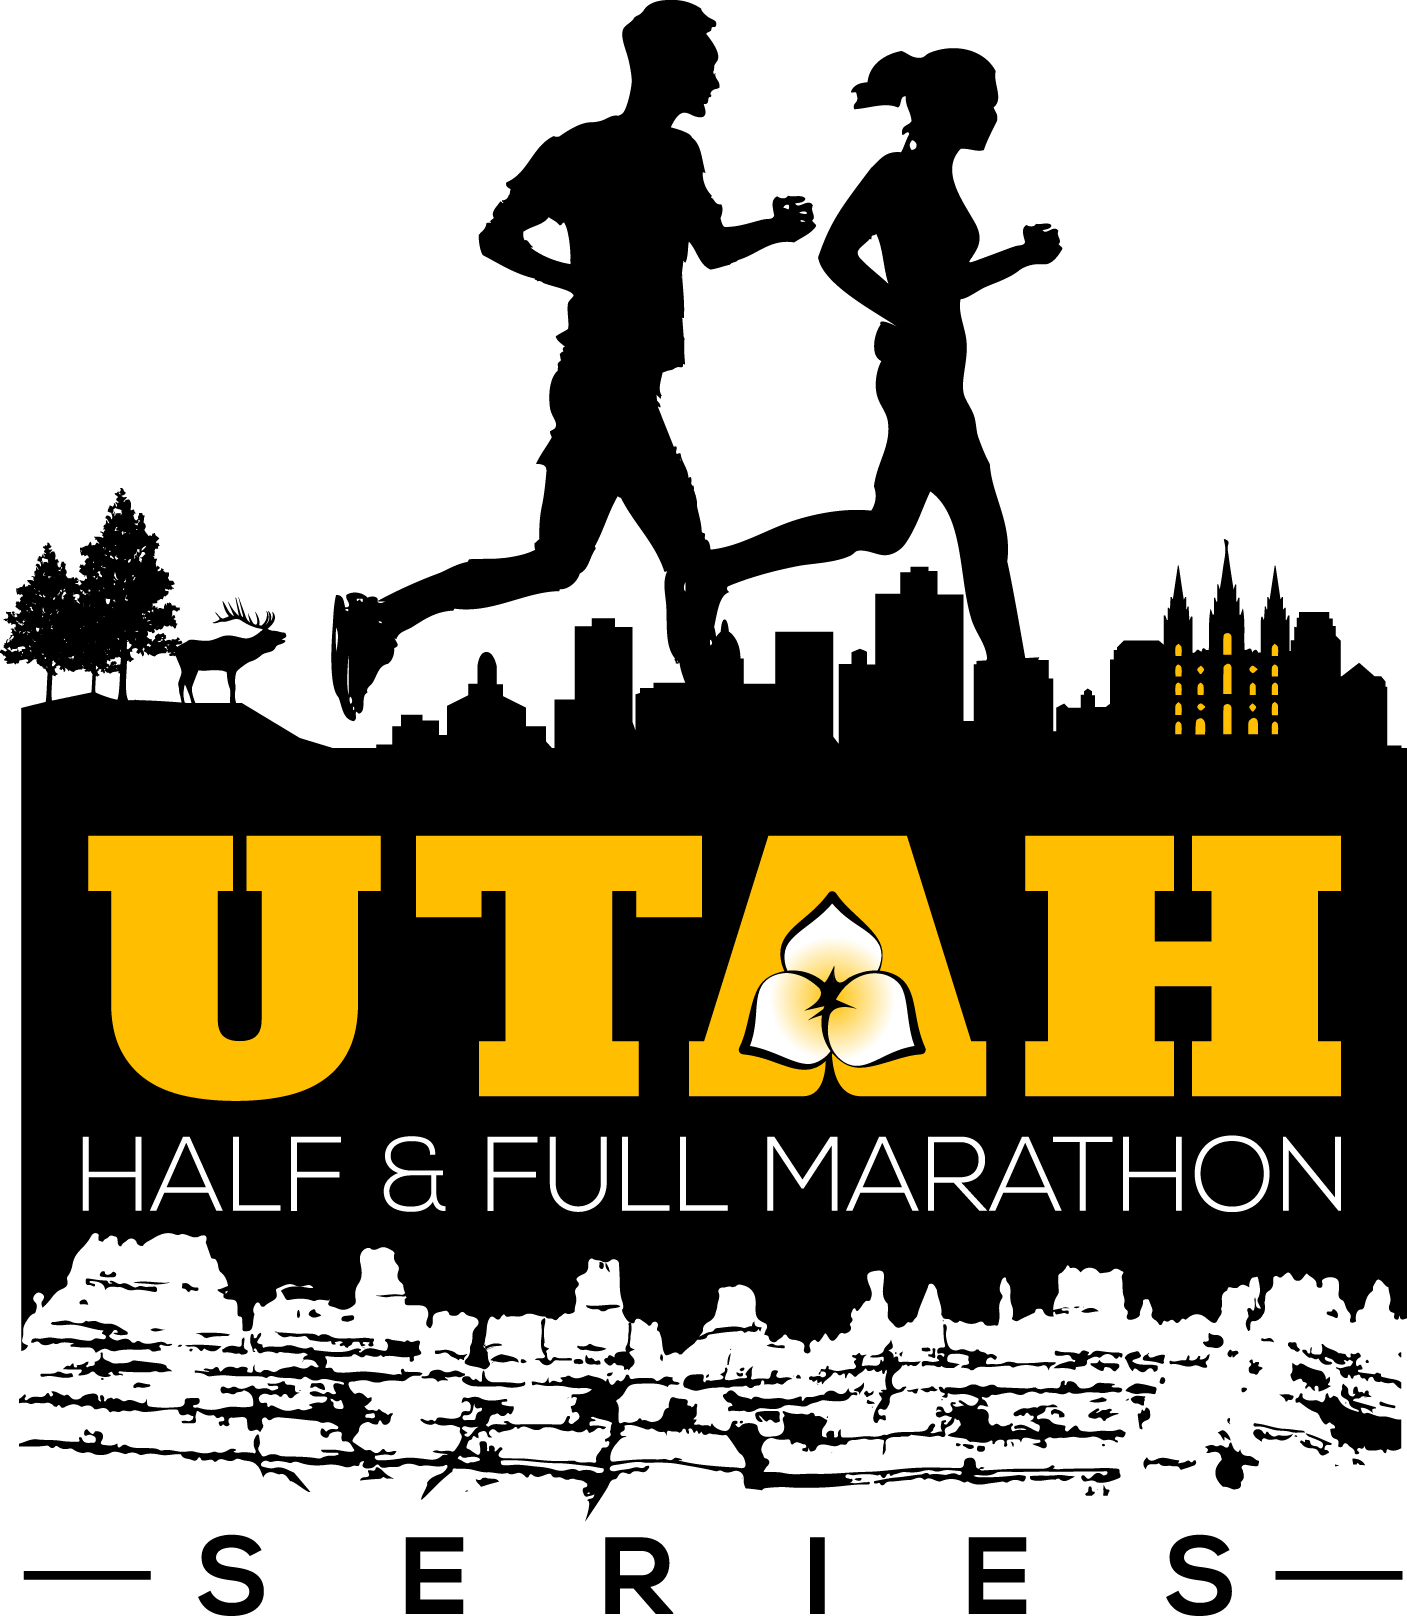 washington-city-half-marathon-sponsor